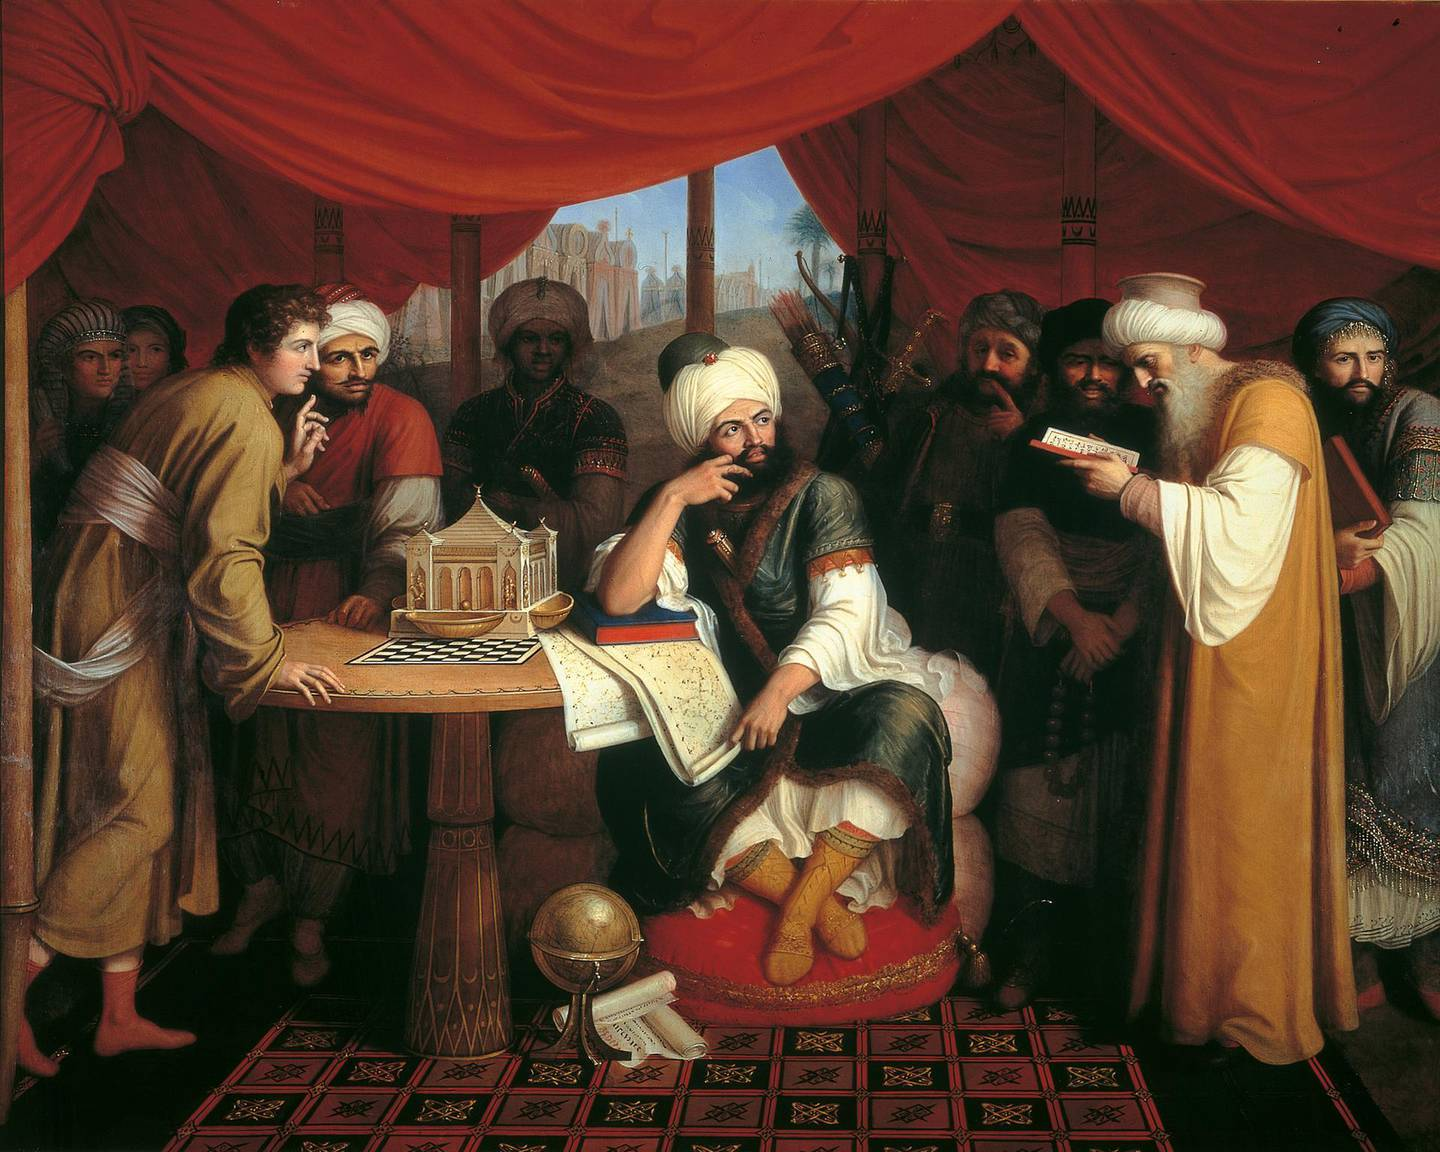 Harun al-Rashid in his Tent with the Wise Men from the East, by Gaspare Landi, 1813, 19th Century, oil on canvas. Italy, Campania, Naplesa, Capodimonte Museum. Whole artwork view. Portrait of a group of people, with the caliph at the center of the scene, surrounded by scholarly and scientific instruments. (Photo by Electa/Mondadori Portfolio via Getty Images)